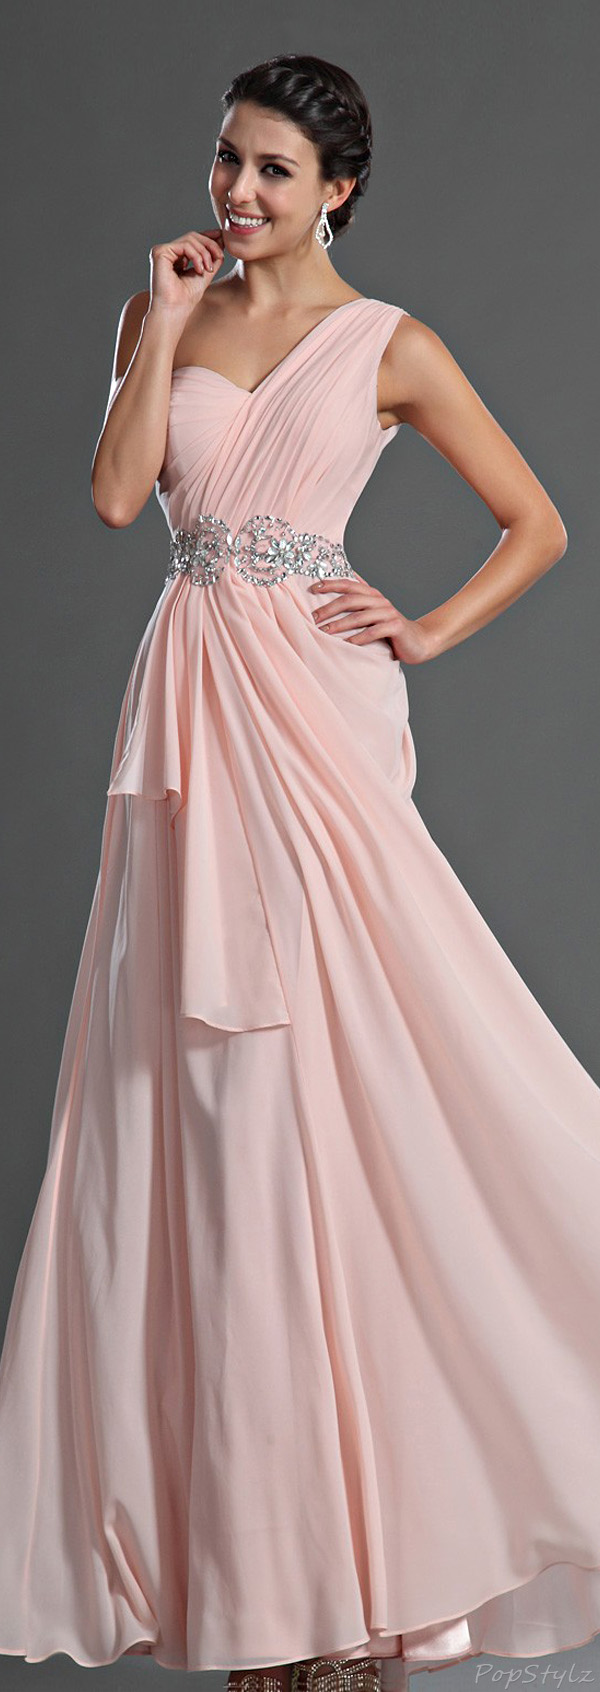 eDressit 00129301 Evening Gown